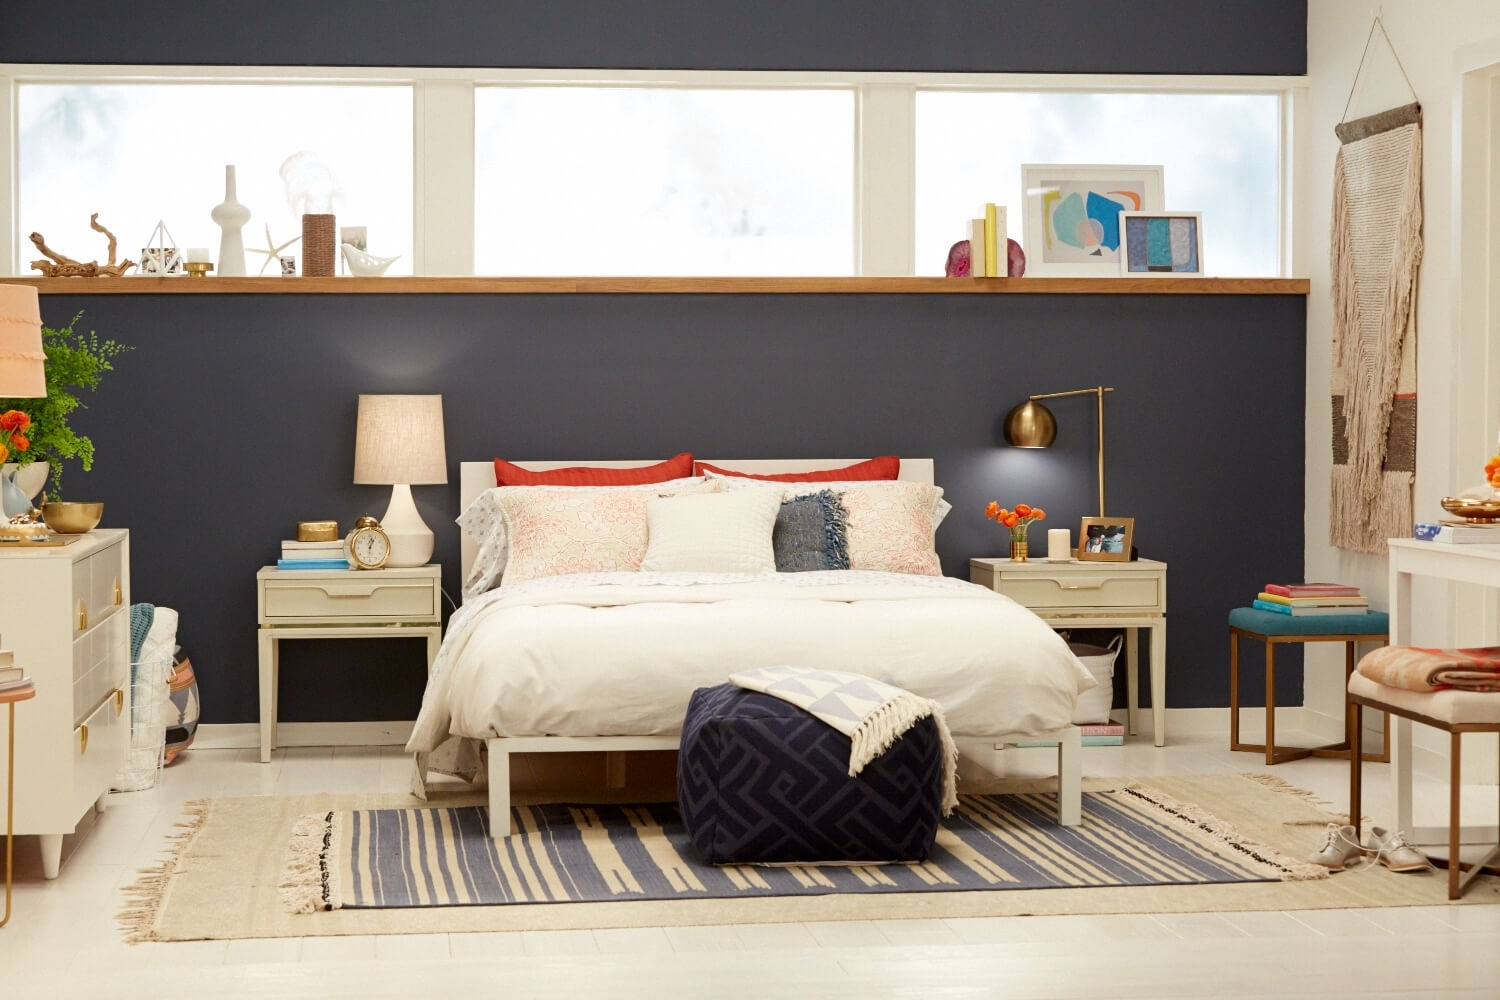 Living Room : Living Roomth Blue Accents Modern Style Accent With Most Popular Wall Accents For Blue Room (View 8 of 15)